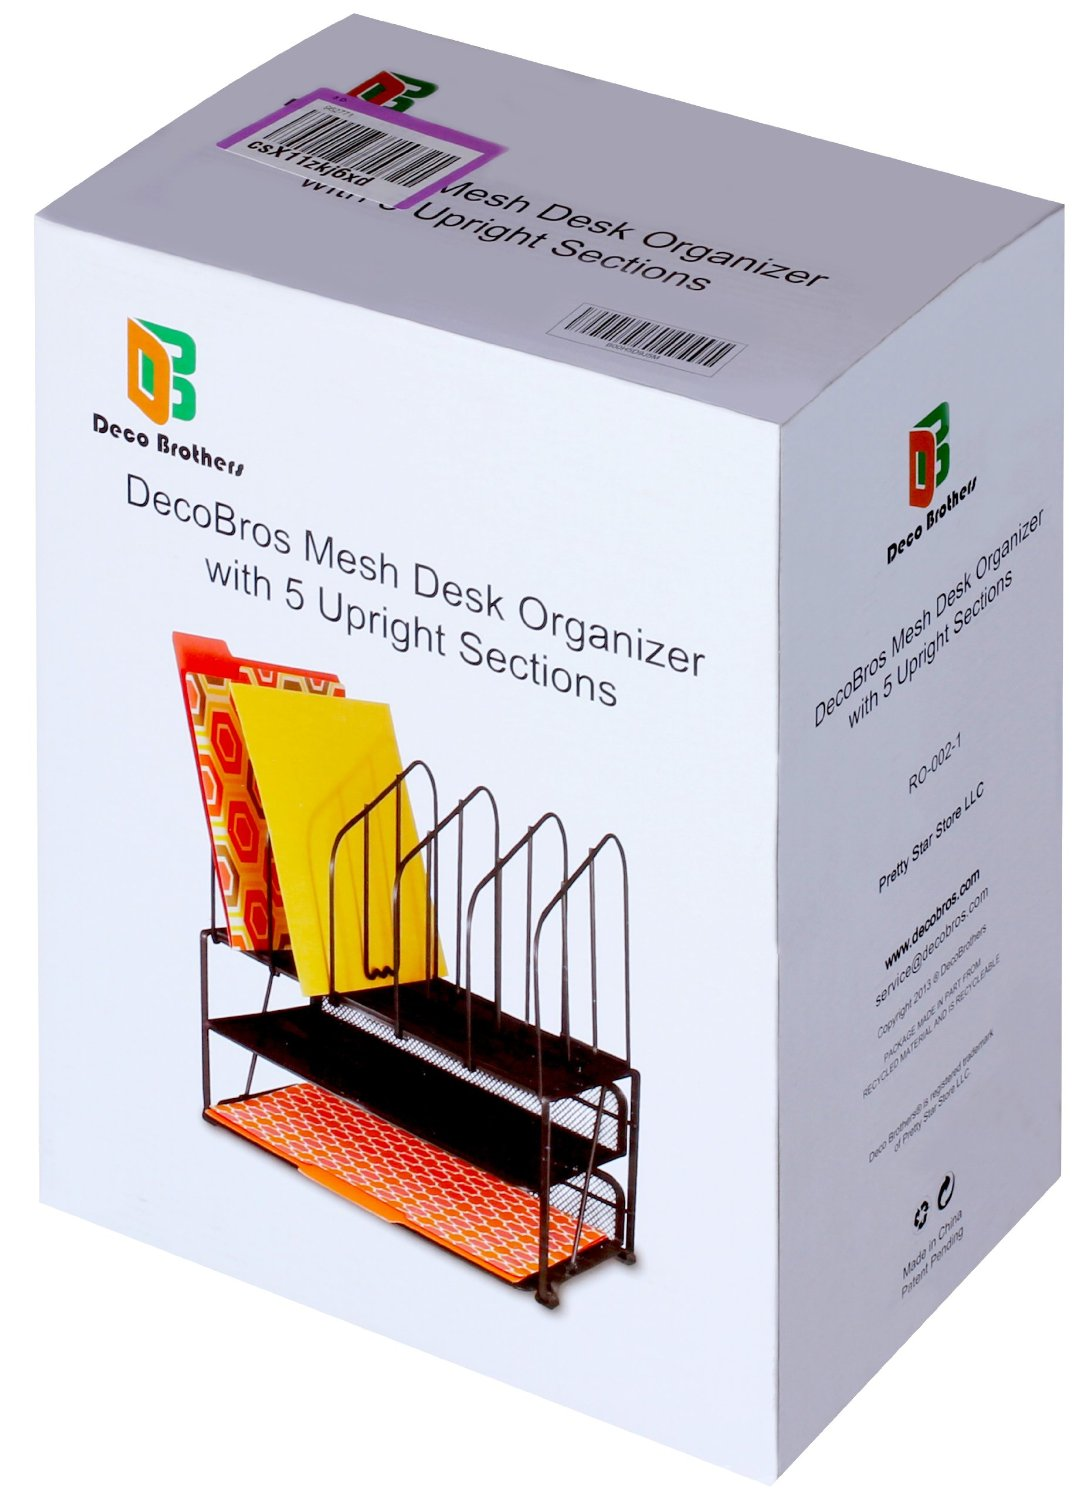 Decobros Mesh Desk Organizer With Double Tray And